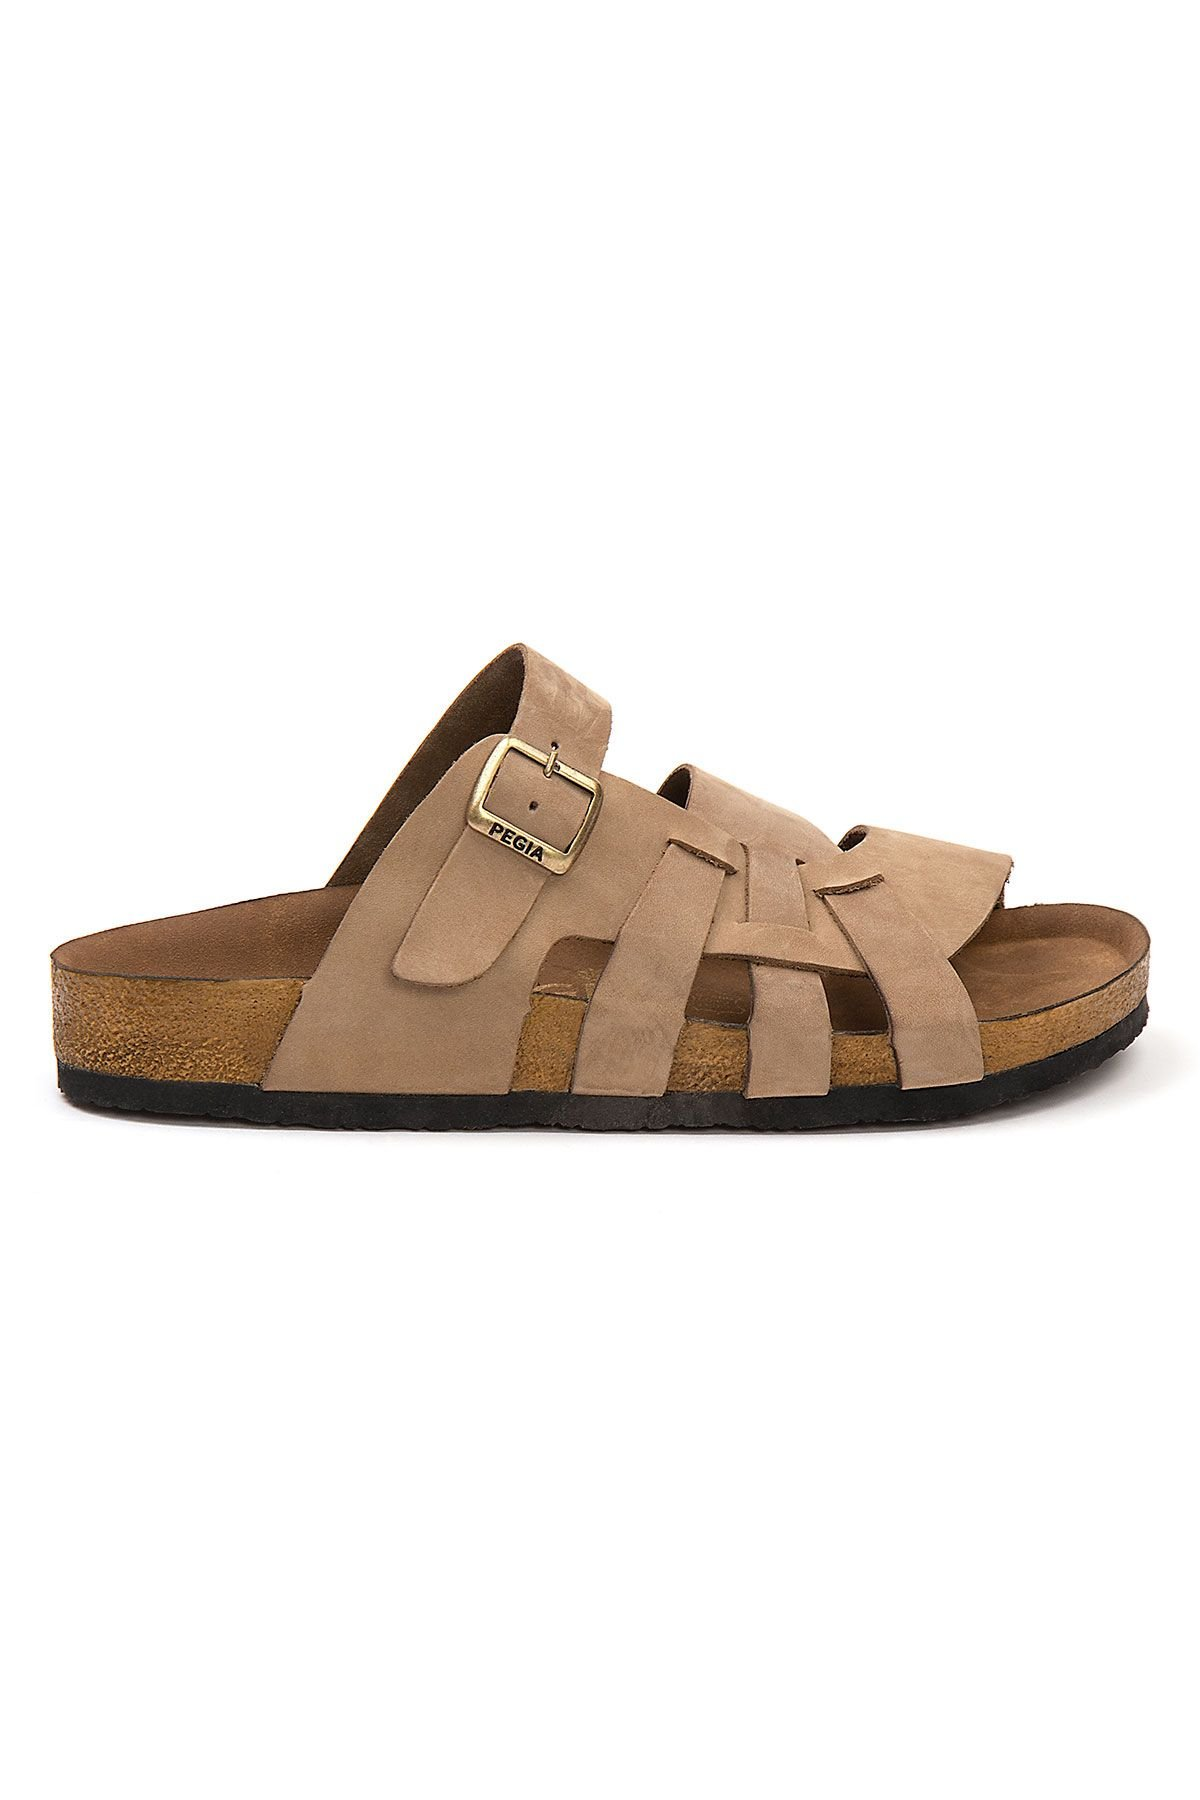 Pegia Men's Genuine Leather Slippers 215026 Sand-colored